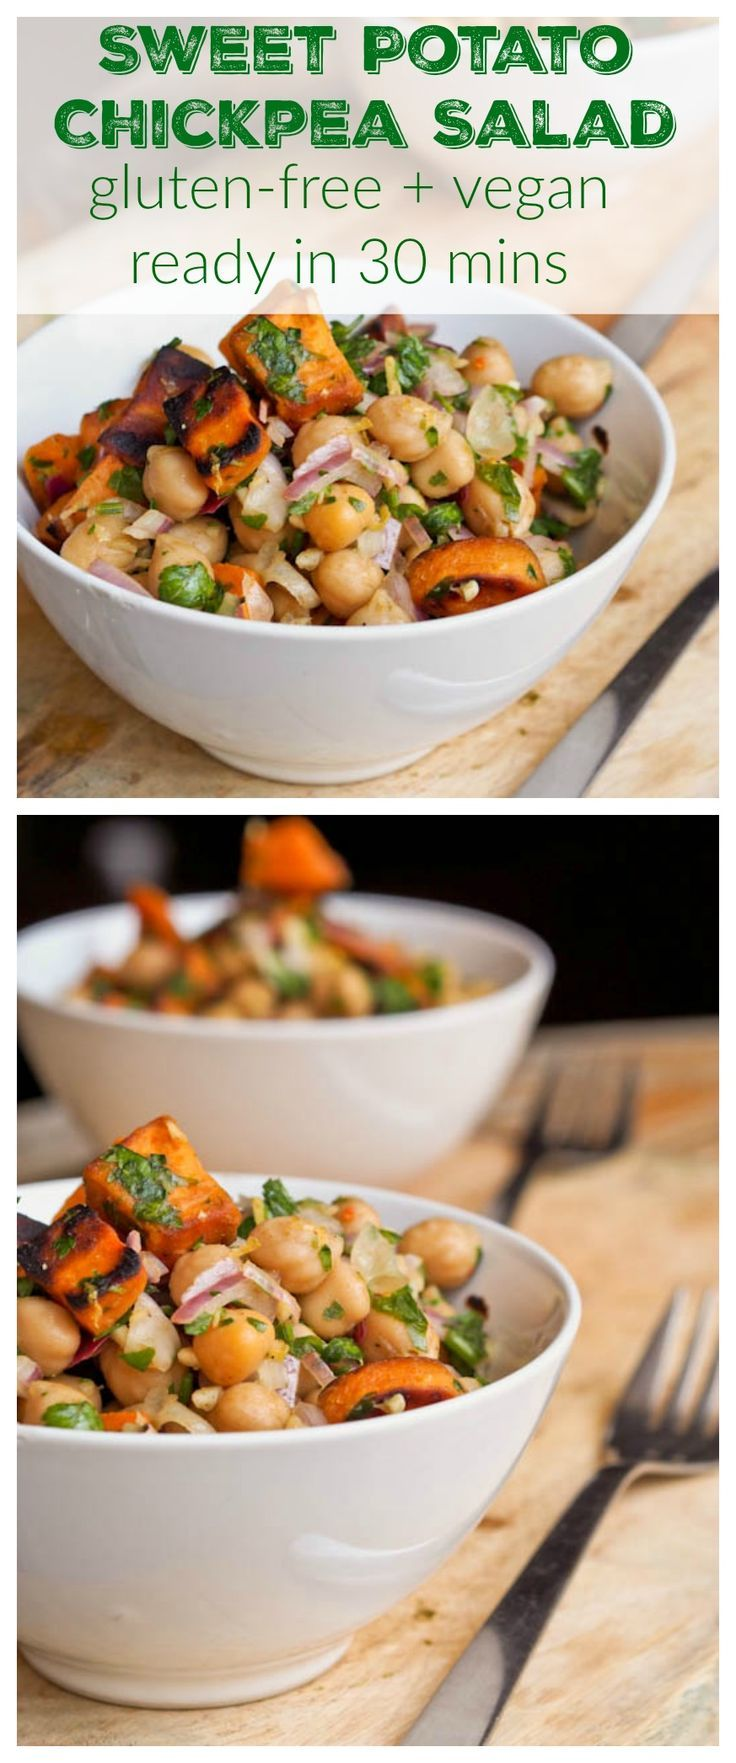 This vegan + gluten-free sweet potato and chickpea salad recipe is ready in 30 mins and bursting with flavor from the parsley, lemons, red onions and medley of spices. Perfect for a healthy weeknight meal in line with those clean eating New Year's Resolutions